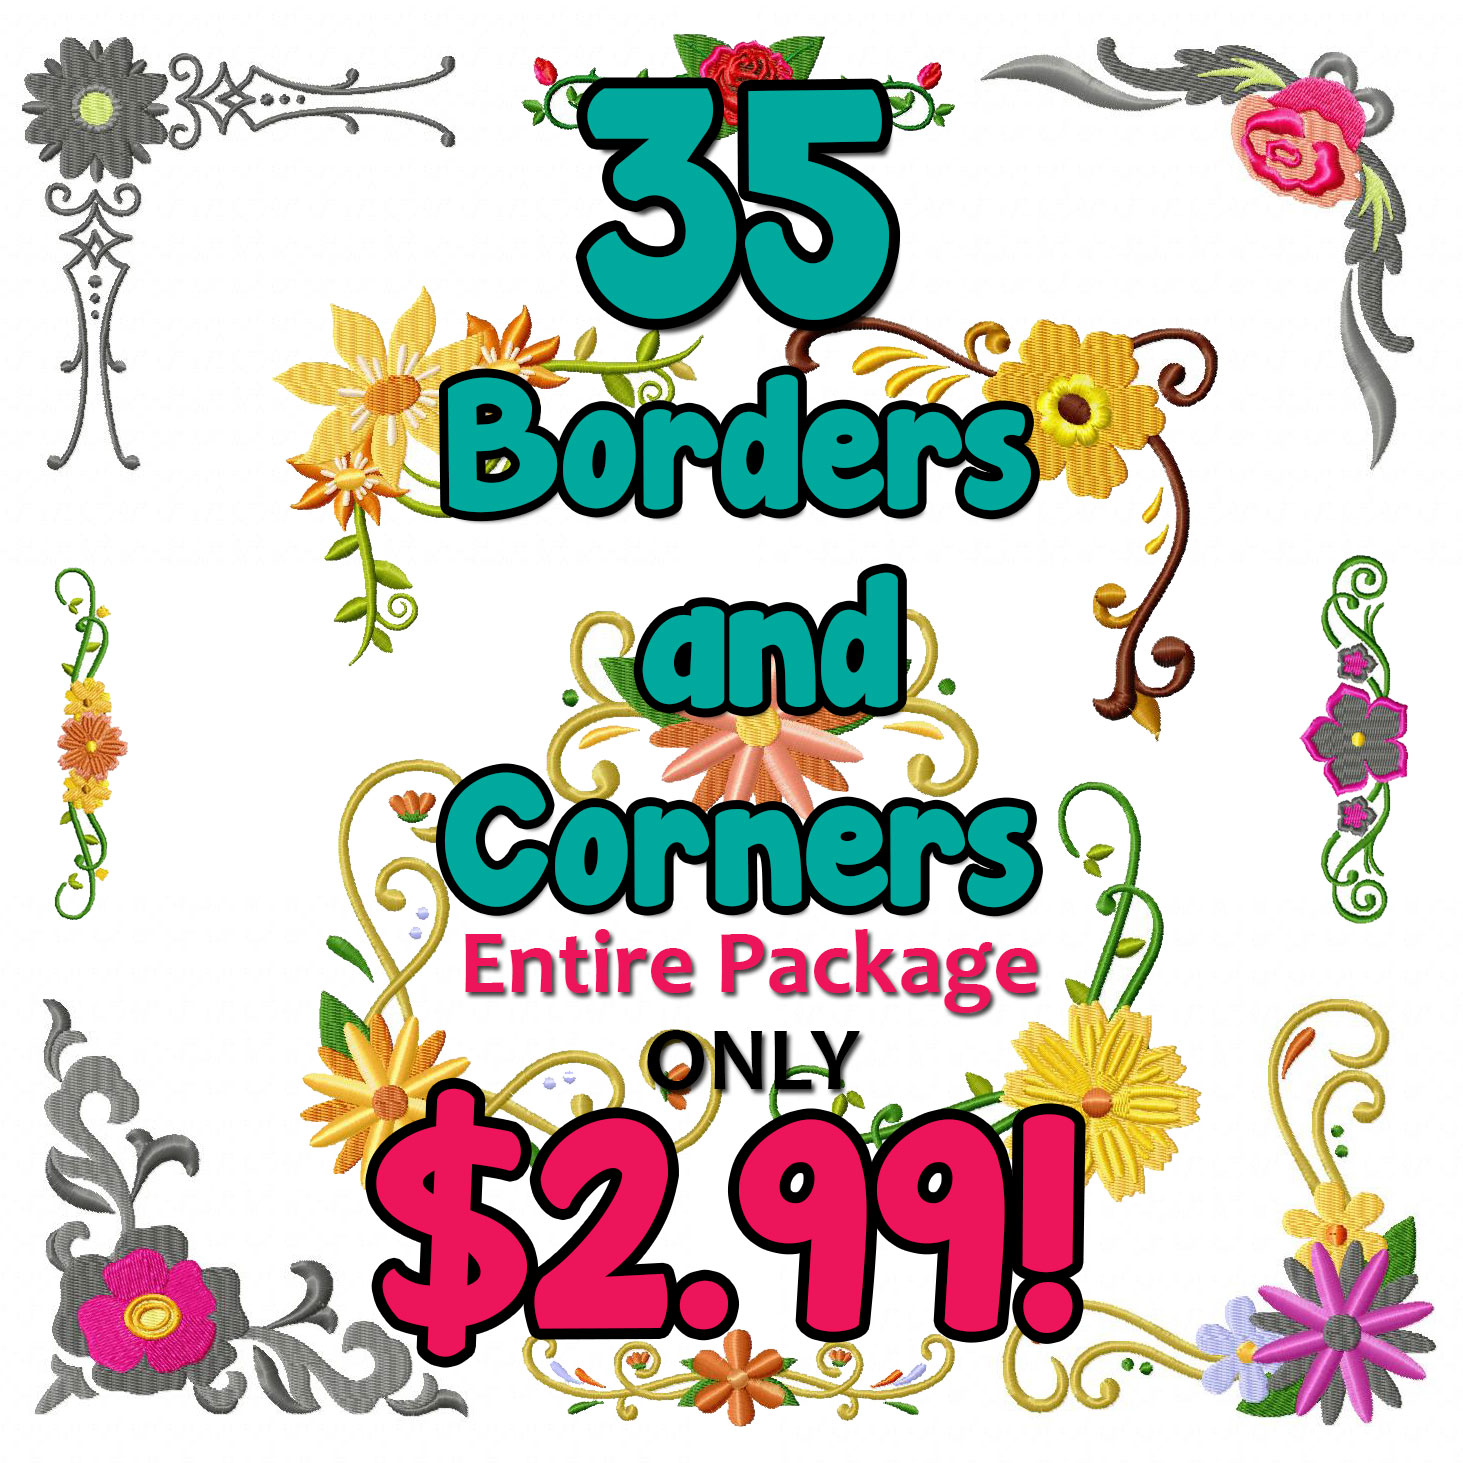 35 Borders and Corners Floral Designs Entire Package ly $2 99